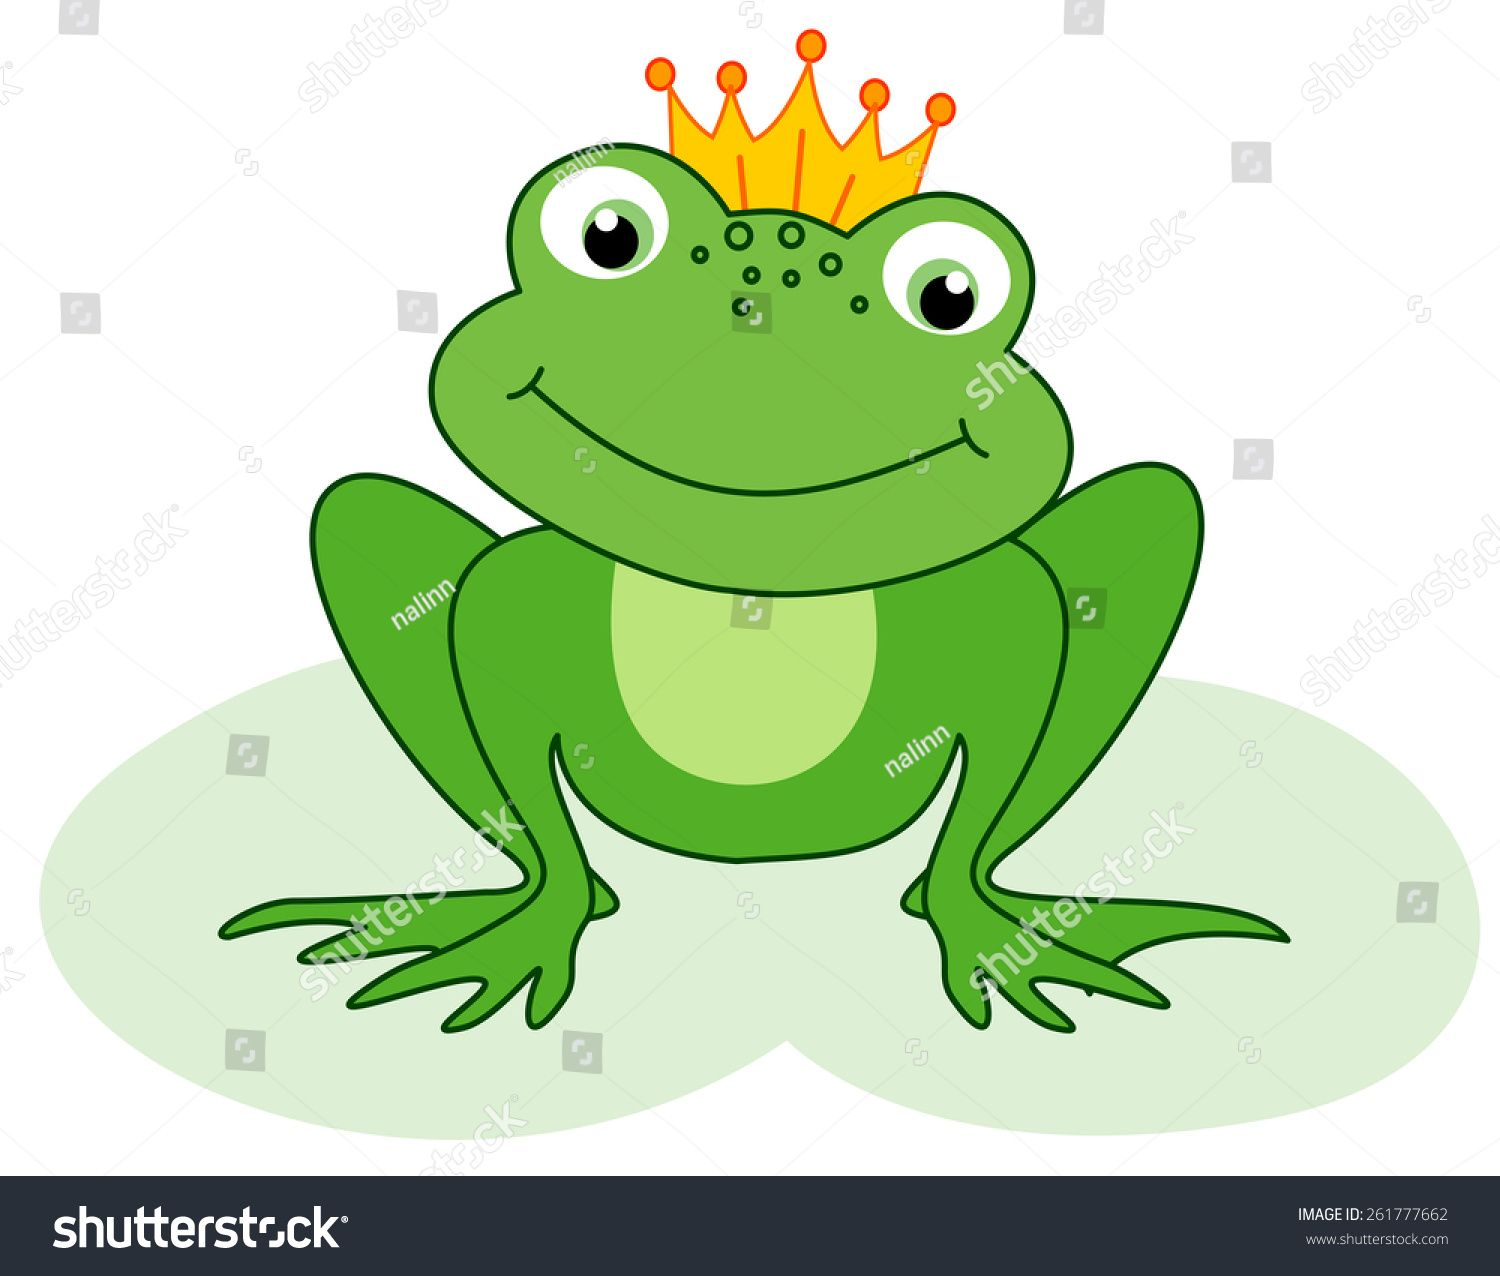 Cute Little Frog Prince With A Golden Crown On Its Head Illustration Ad Ad Prince Frog Cute Golden In 2020 Frog Prince Frog Cute Frogs